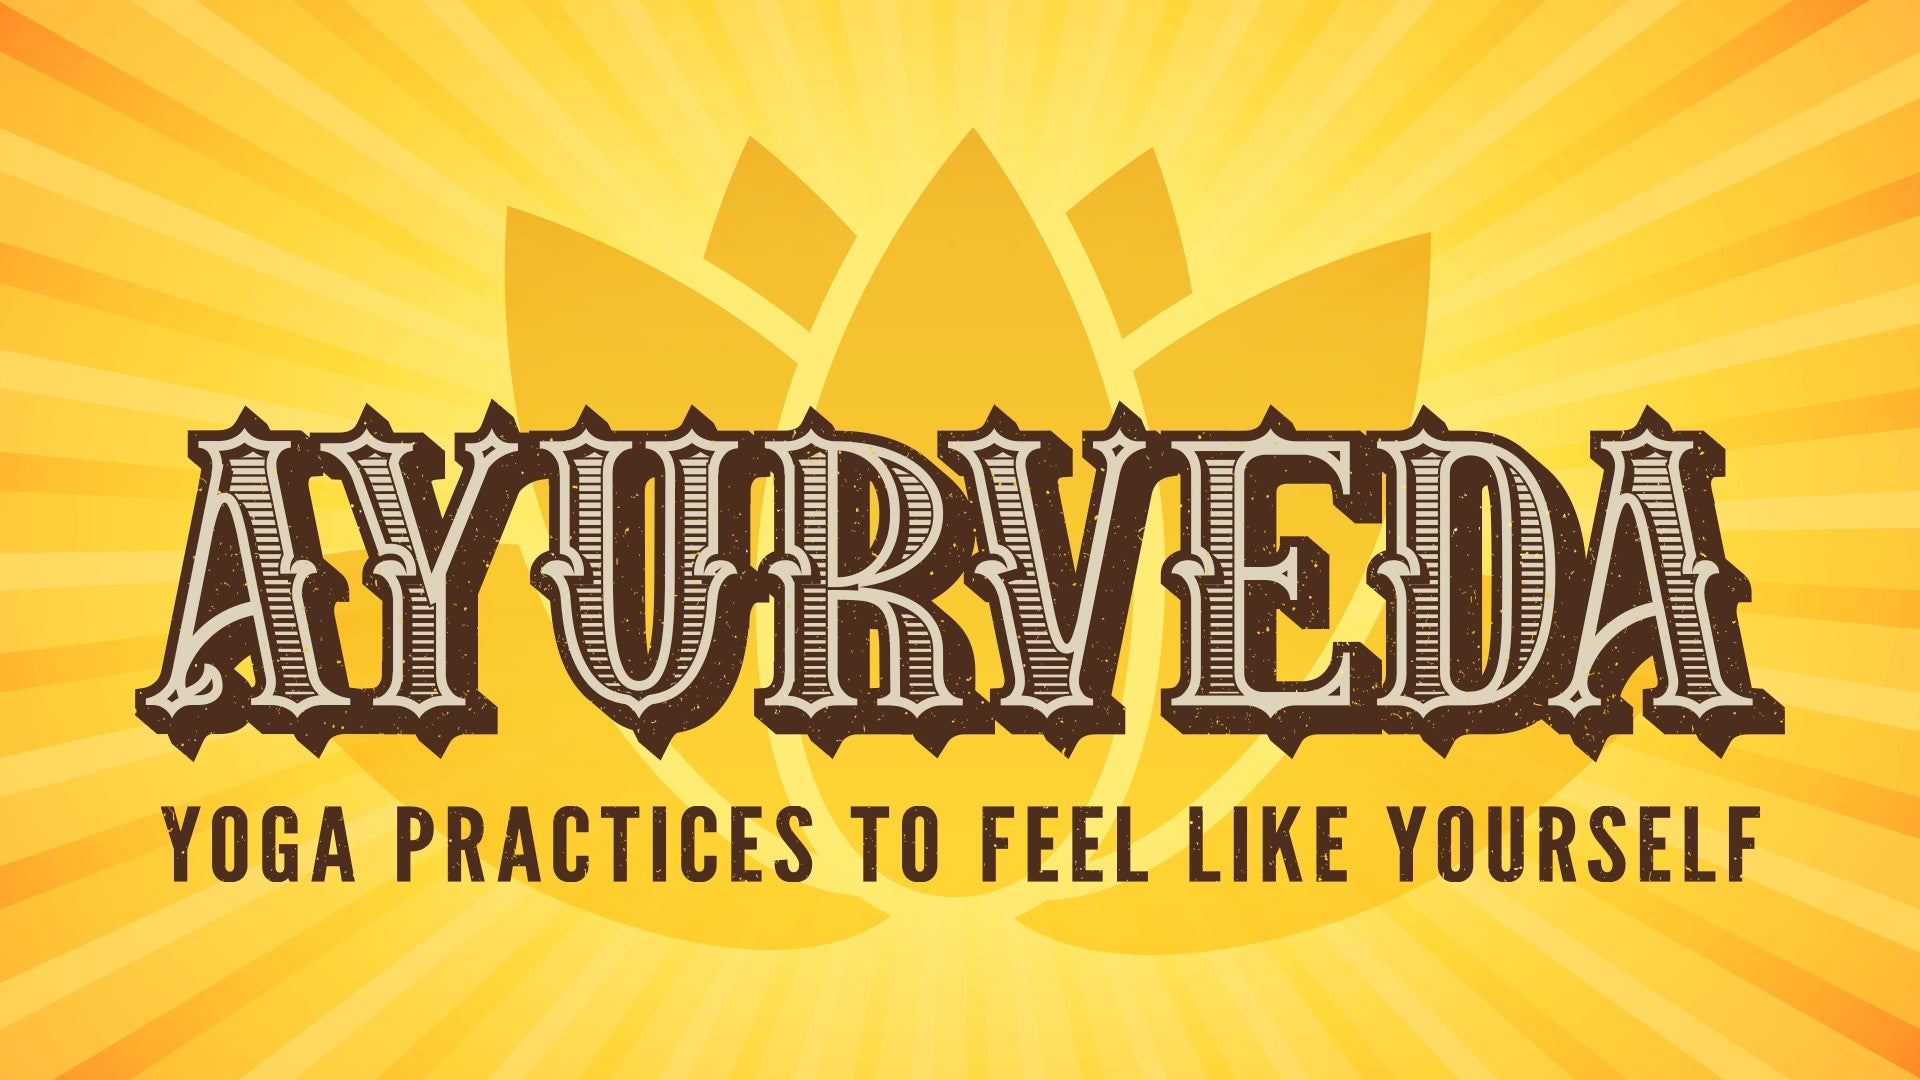 Ayurveda: Practices to Feel Like Yourself Artwork